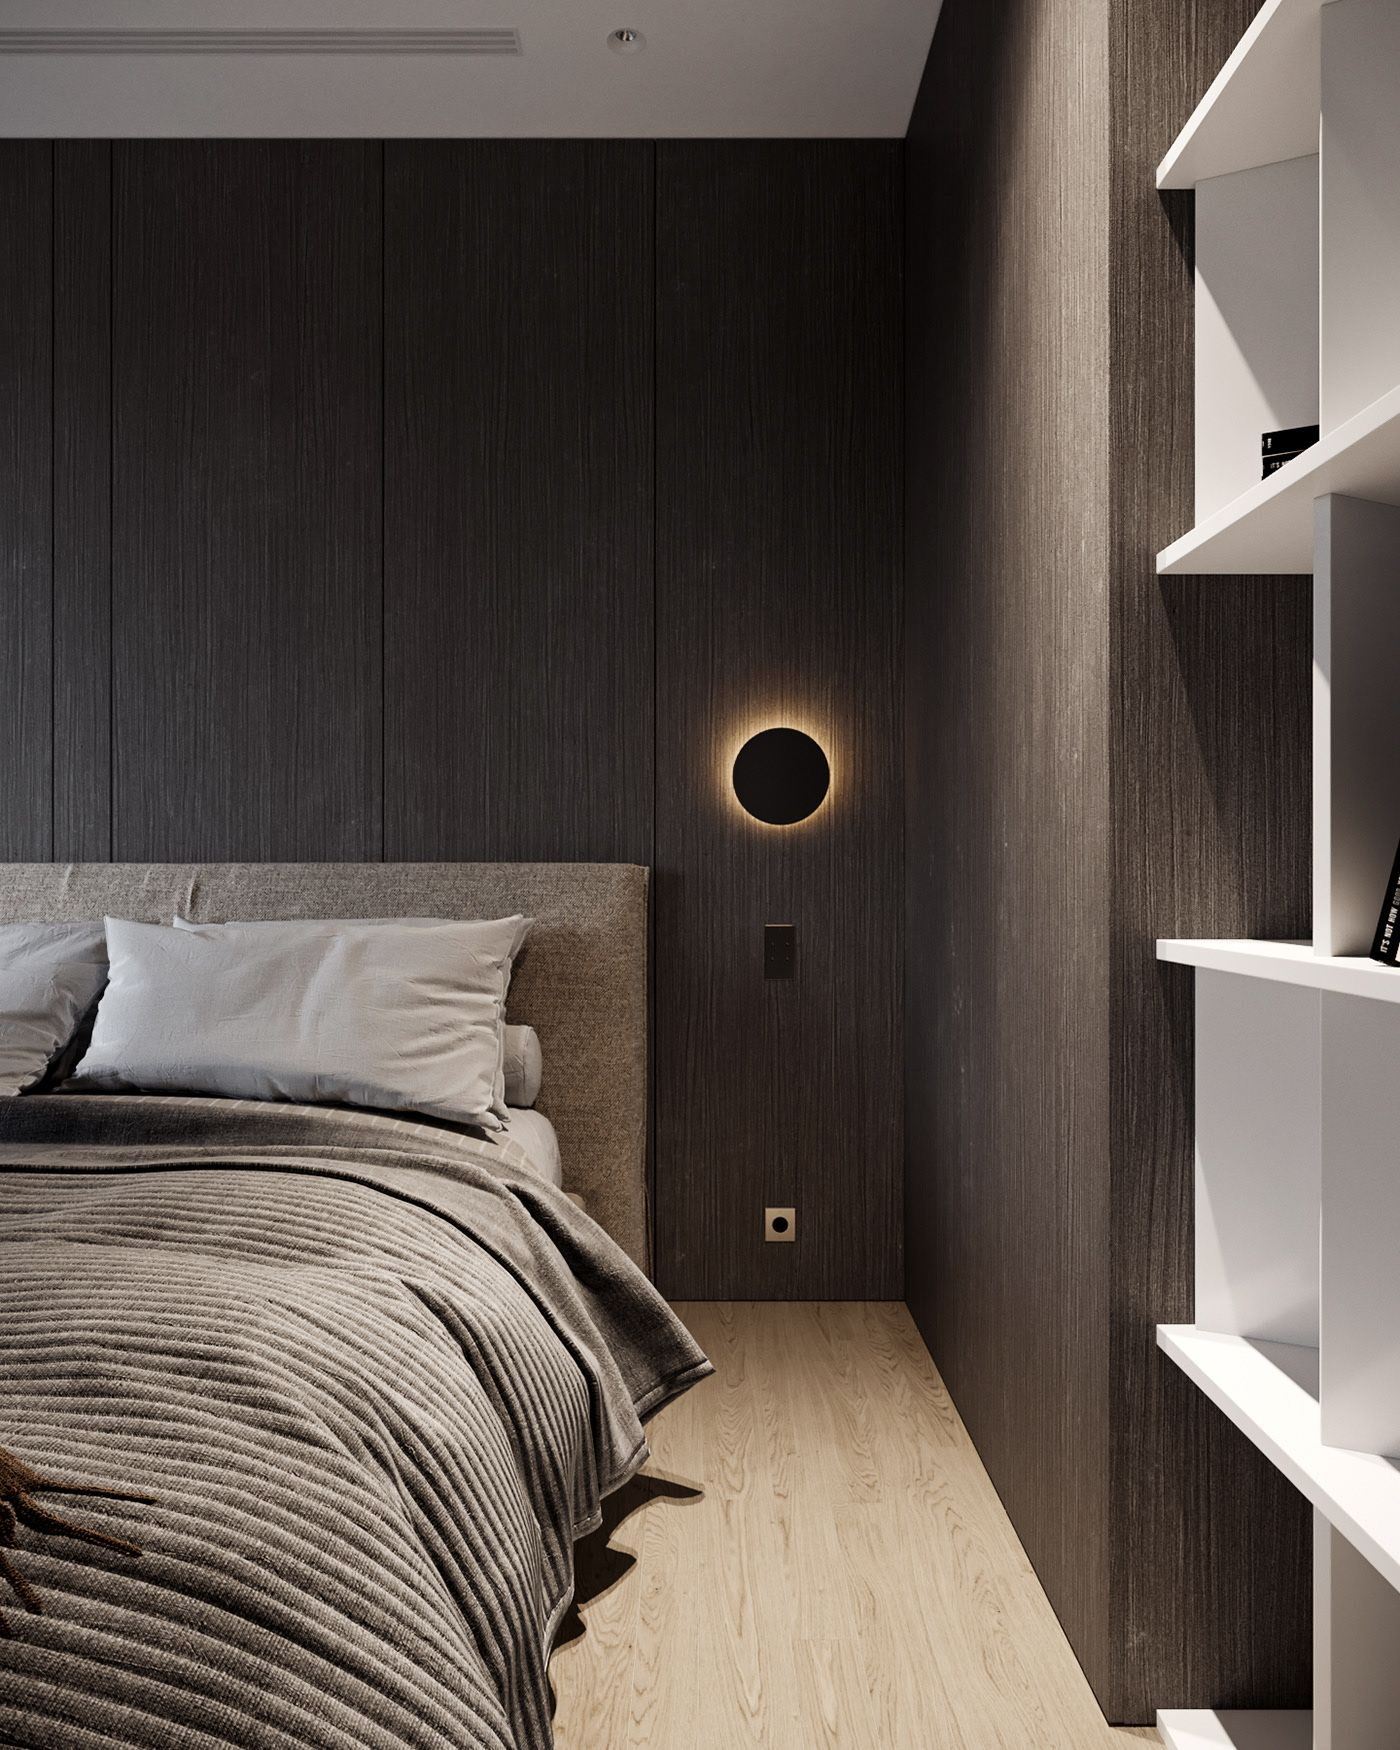 Bedroom In Contemporary Style On Behance: MOPS /Z_HOUSE 2nd Floor On Behance